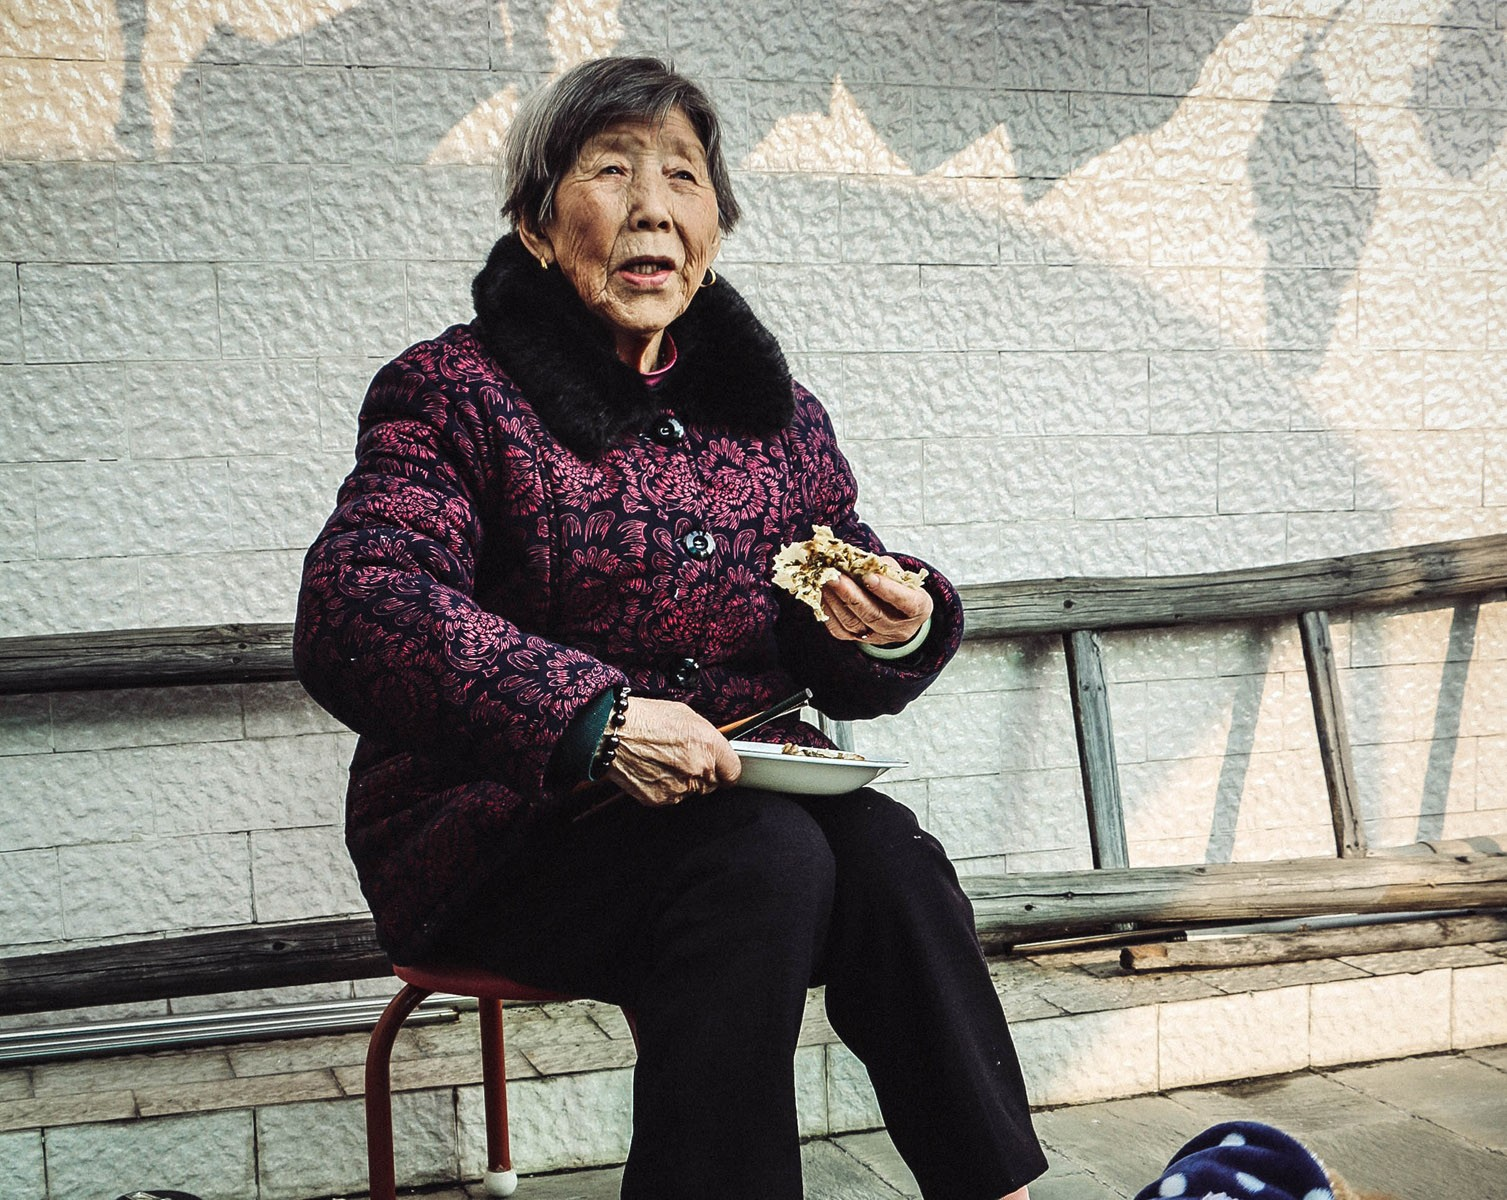 sherrys-grandmother-at-jinhua_24851811356_o